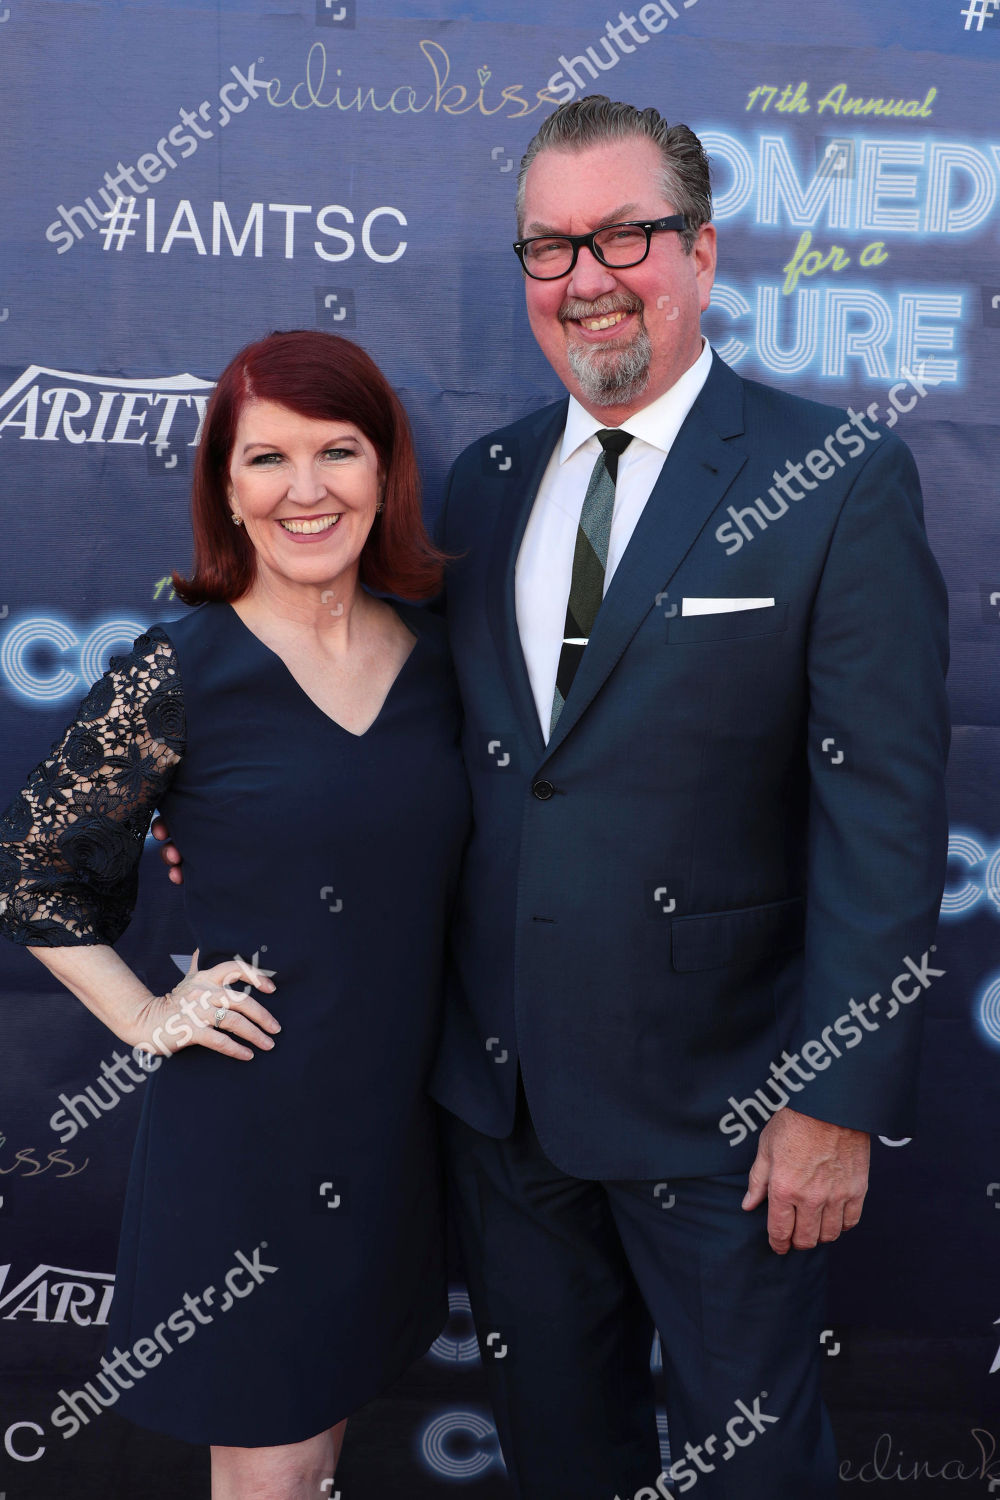 17th Annual Comedy for a Cure benefiting Tuberous Sclerosis Alliance, Universal City, Los Angeles, USA - 08 Apr 2018 Stok Fotoğraf